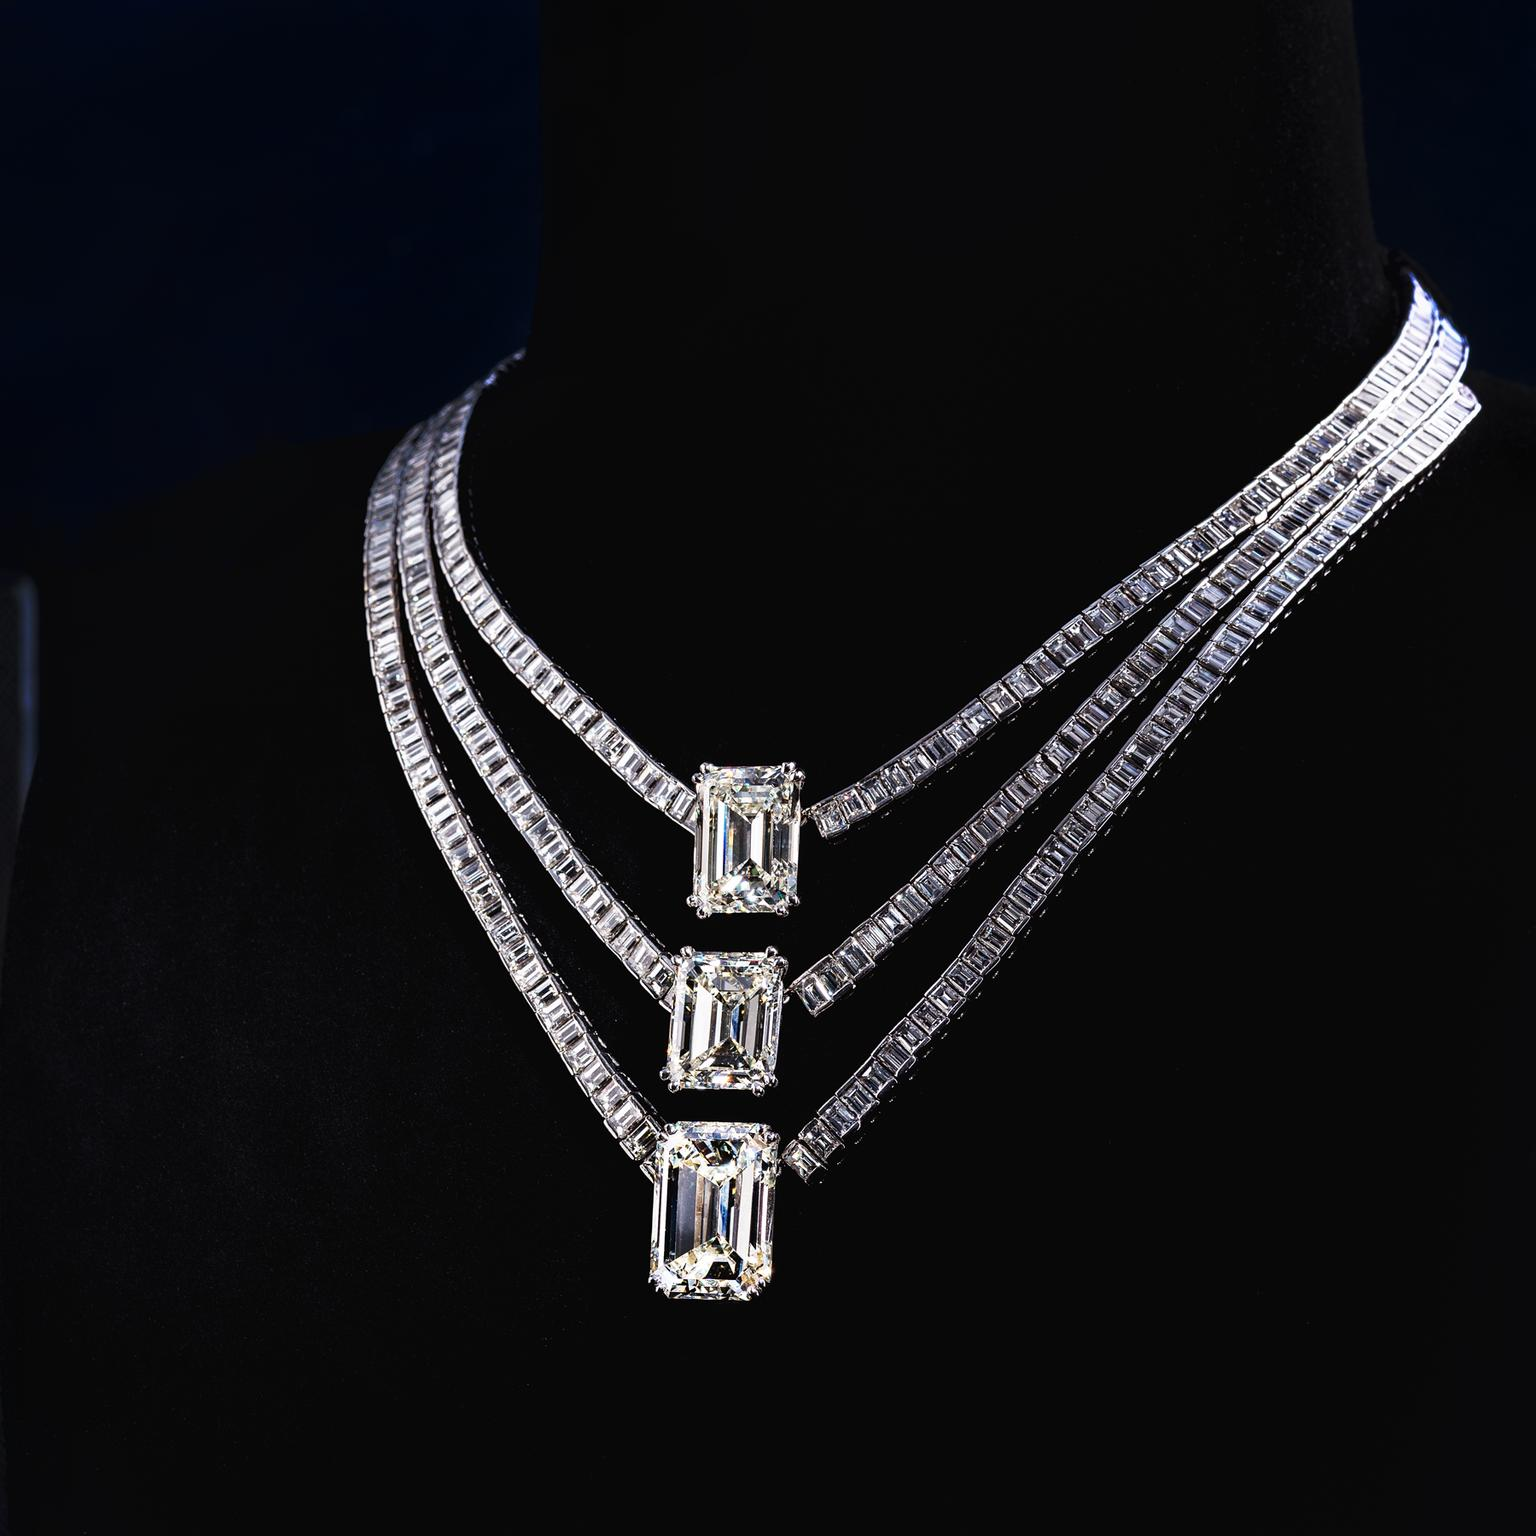 Jahan emerald-cut white diamond necklace